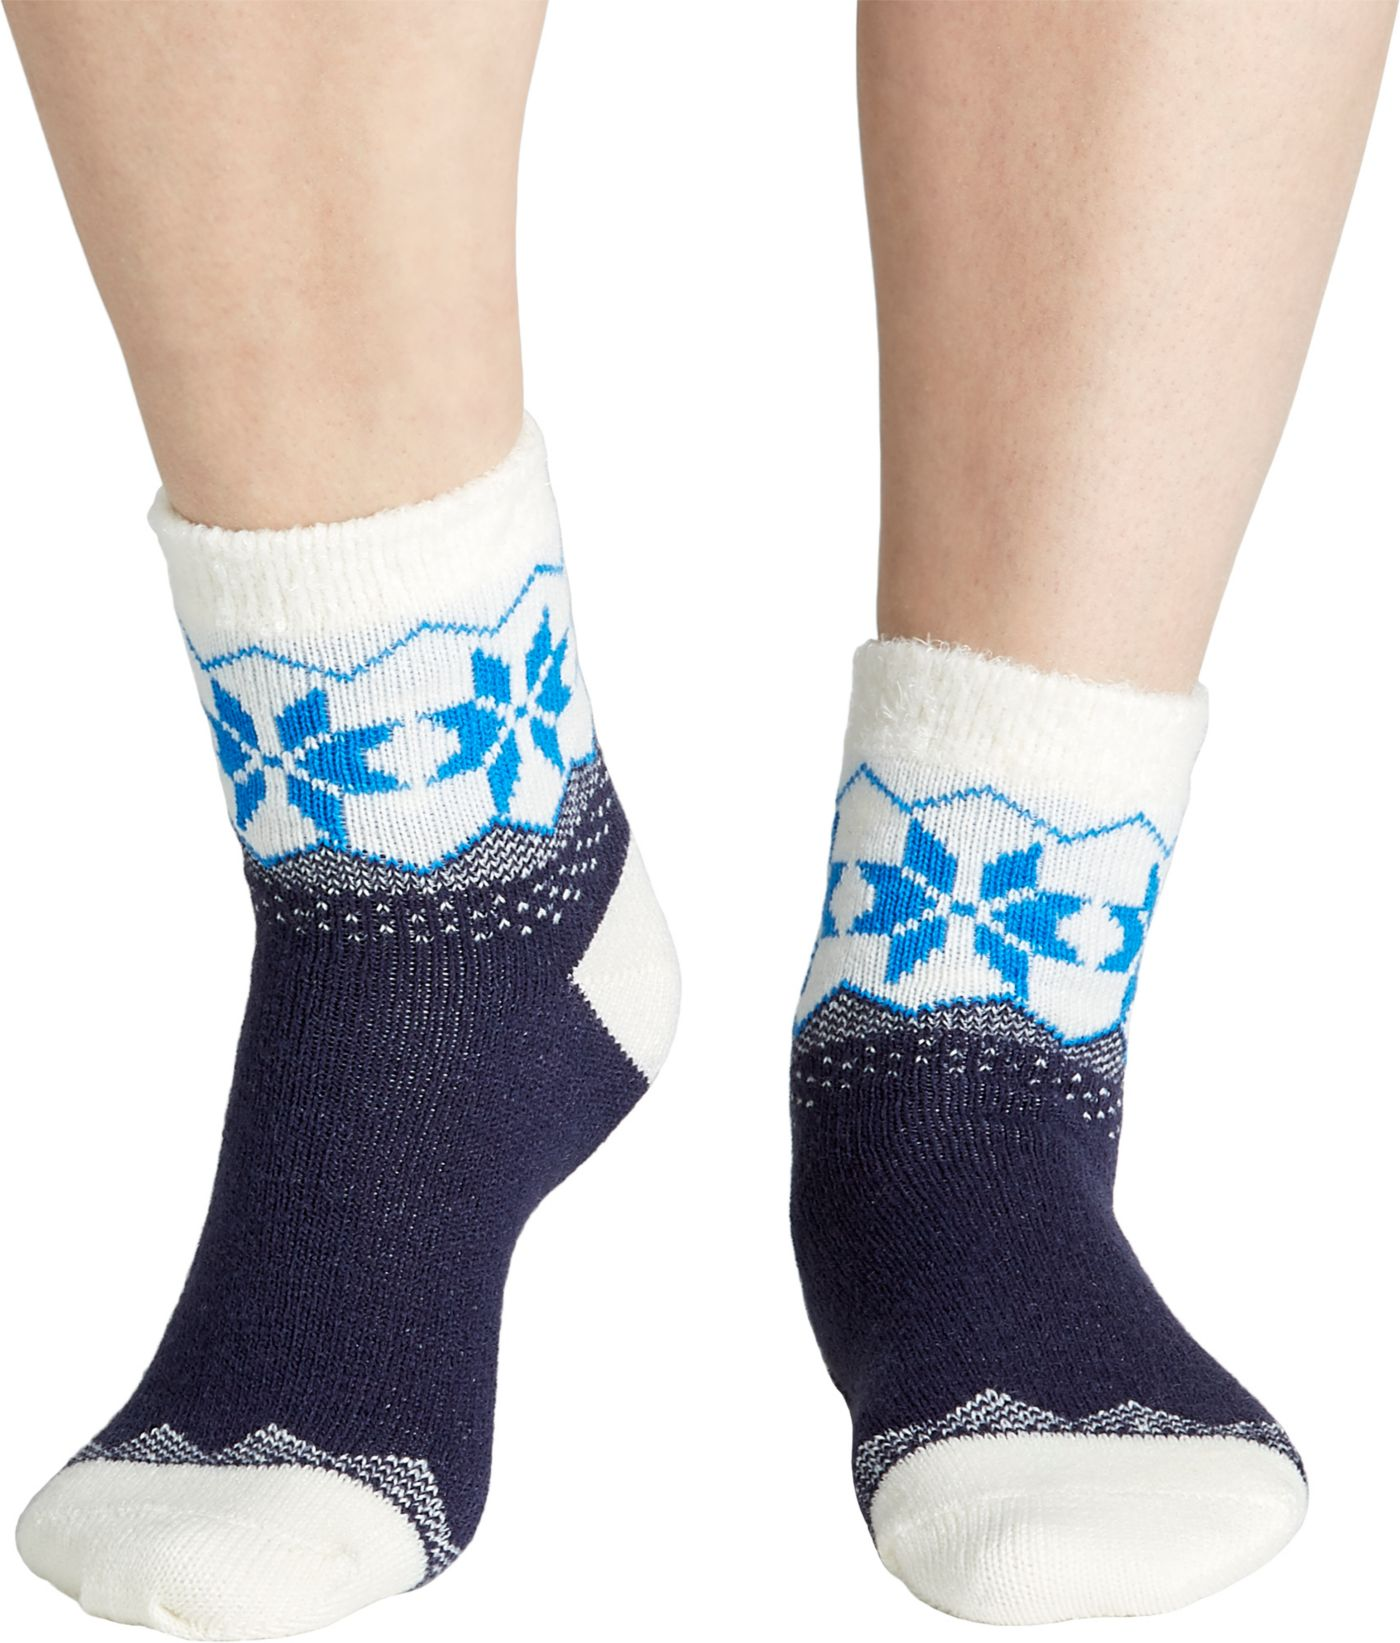 Field & Stream Women's Cozy Snowflake Cuff Socks